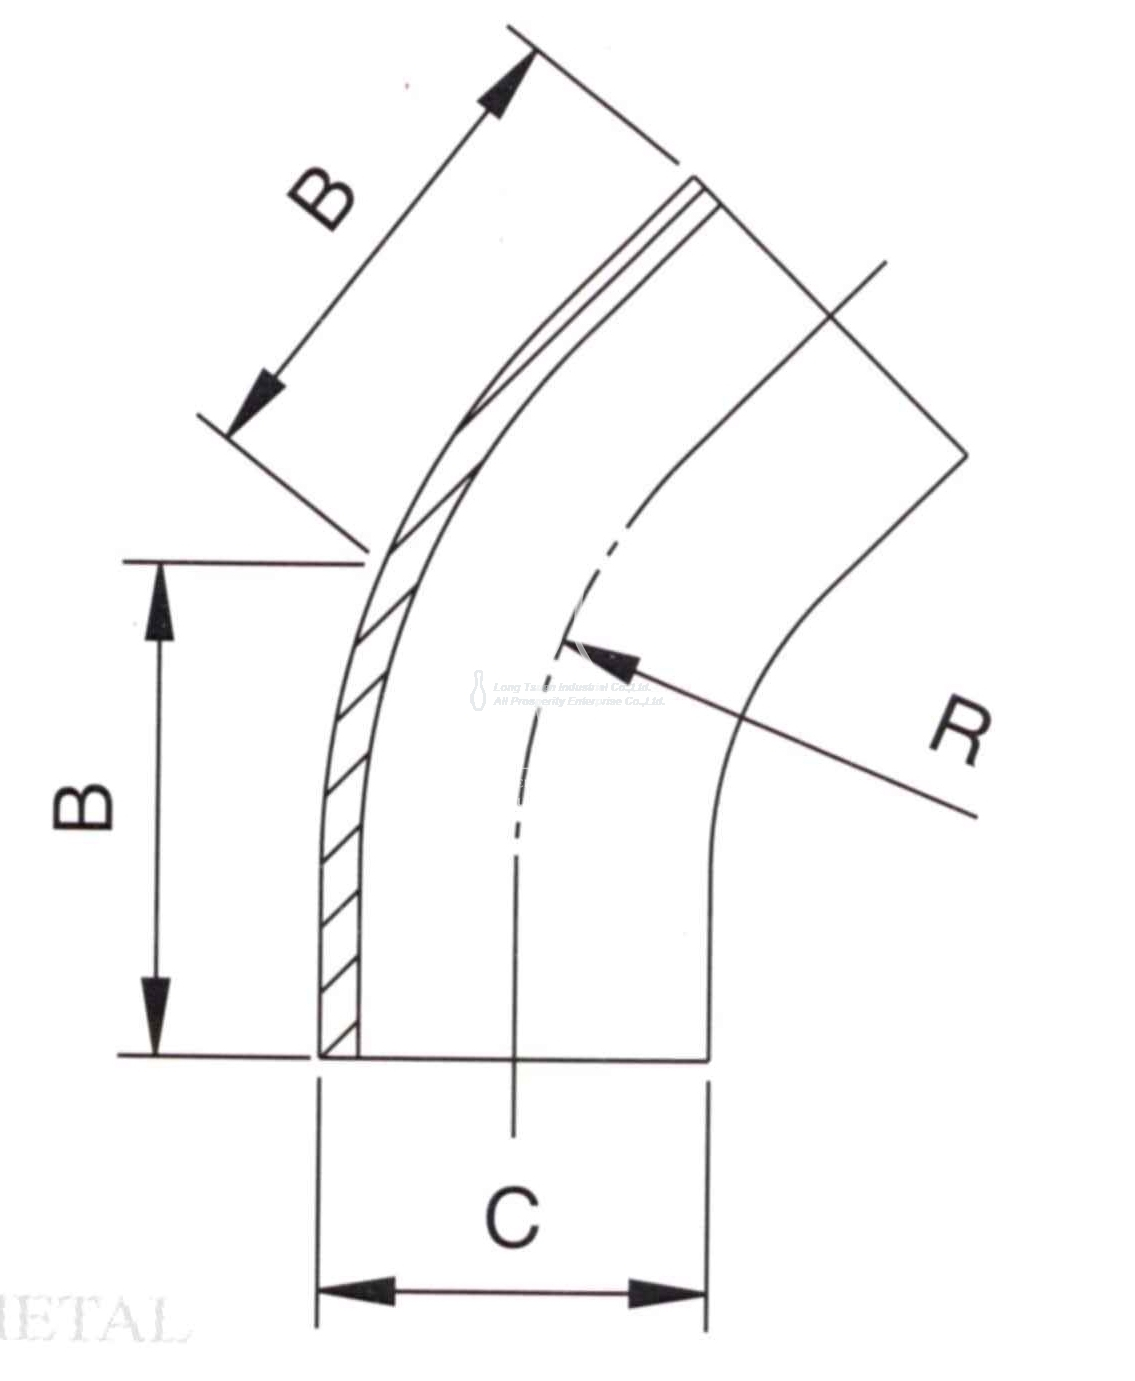 3a 2ks 45 Deg Elbow Long Radius